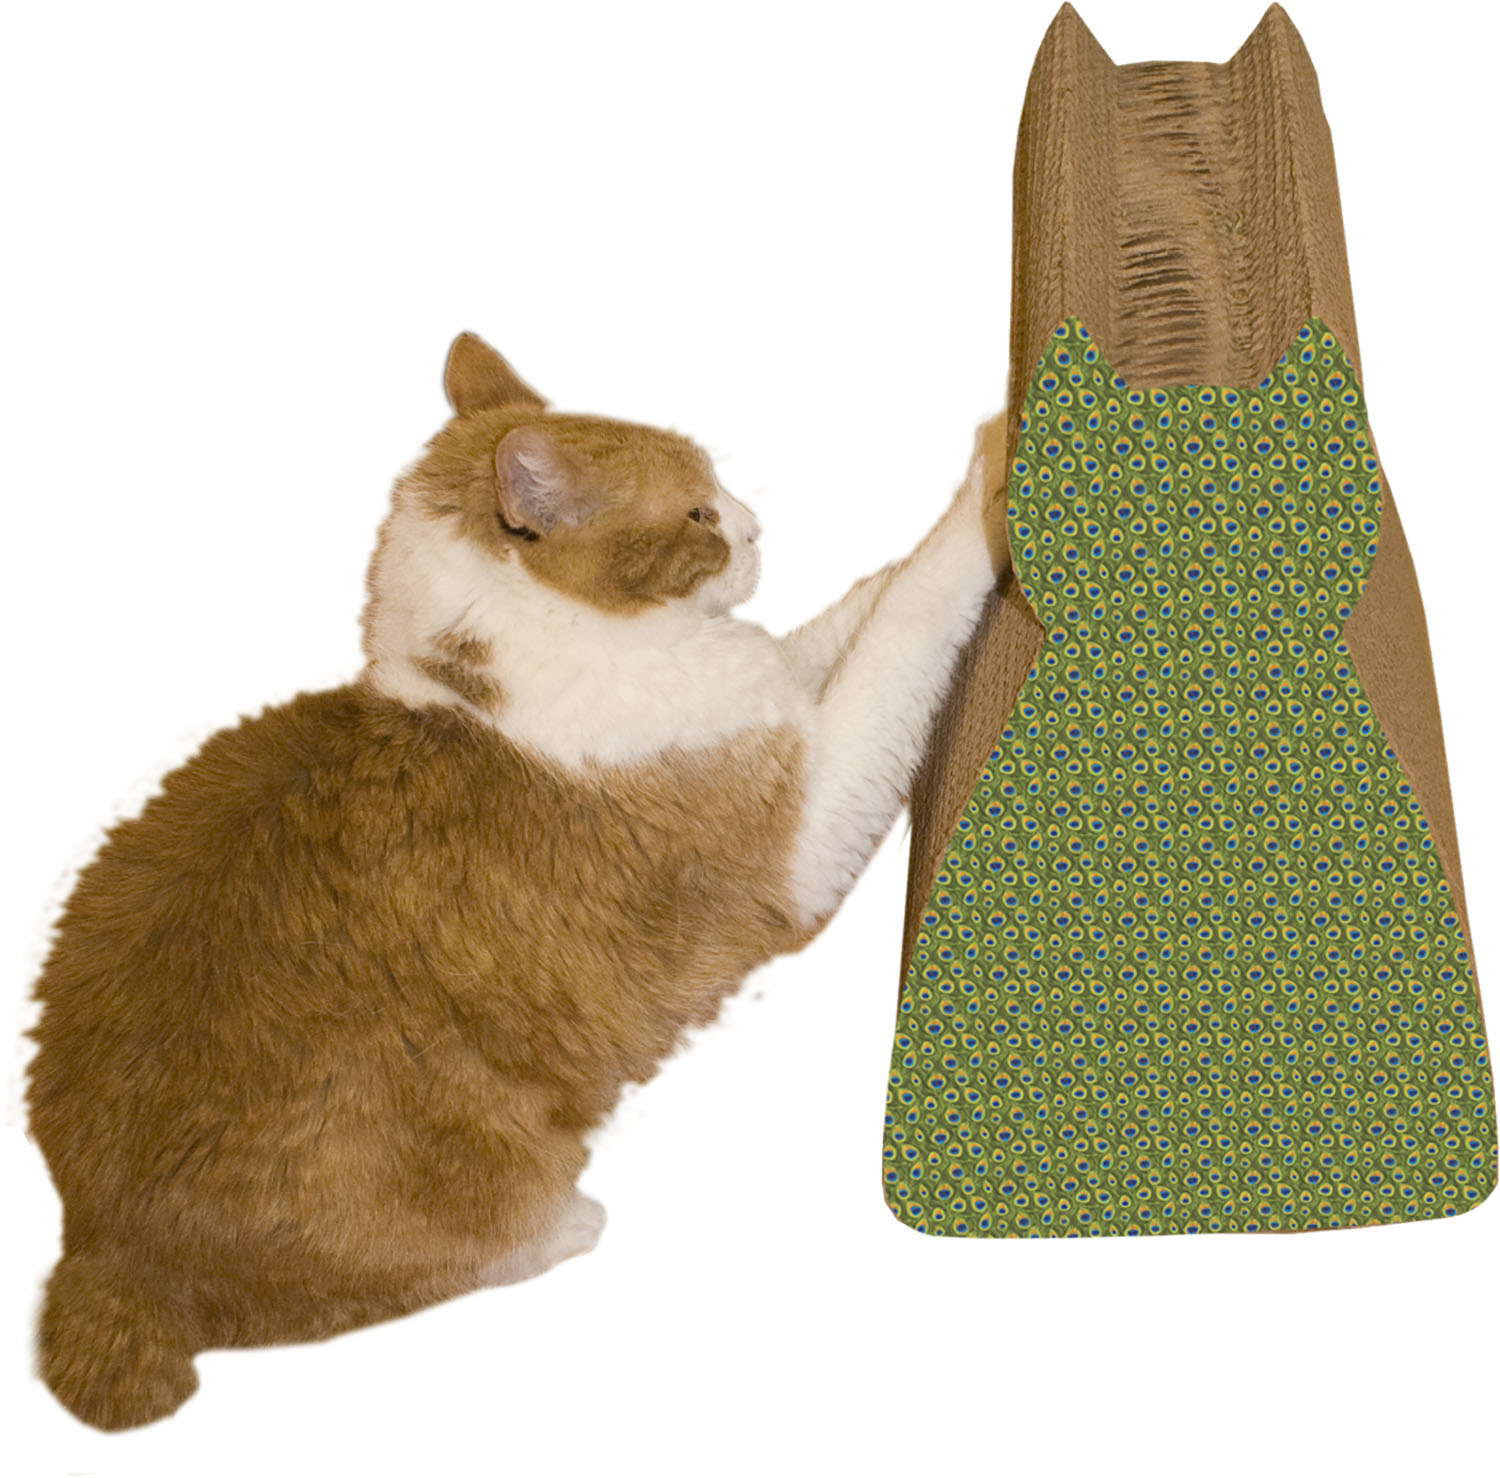 Imperial Cat - Shape Scratchers Giant Pyramid 2 in 1